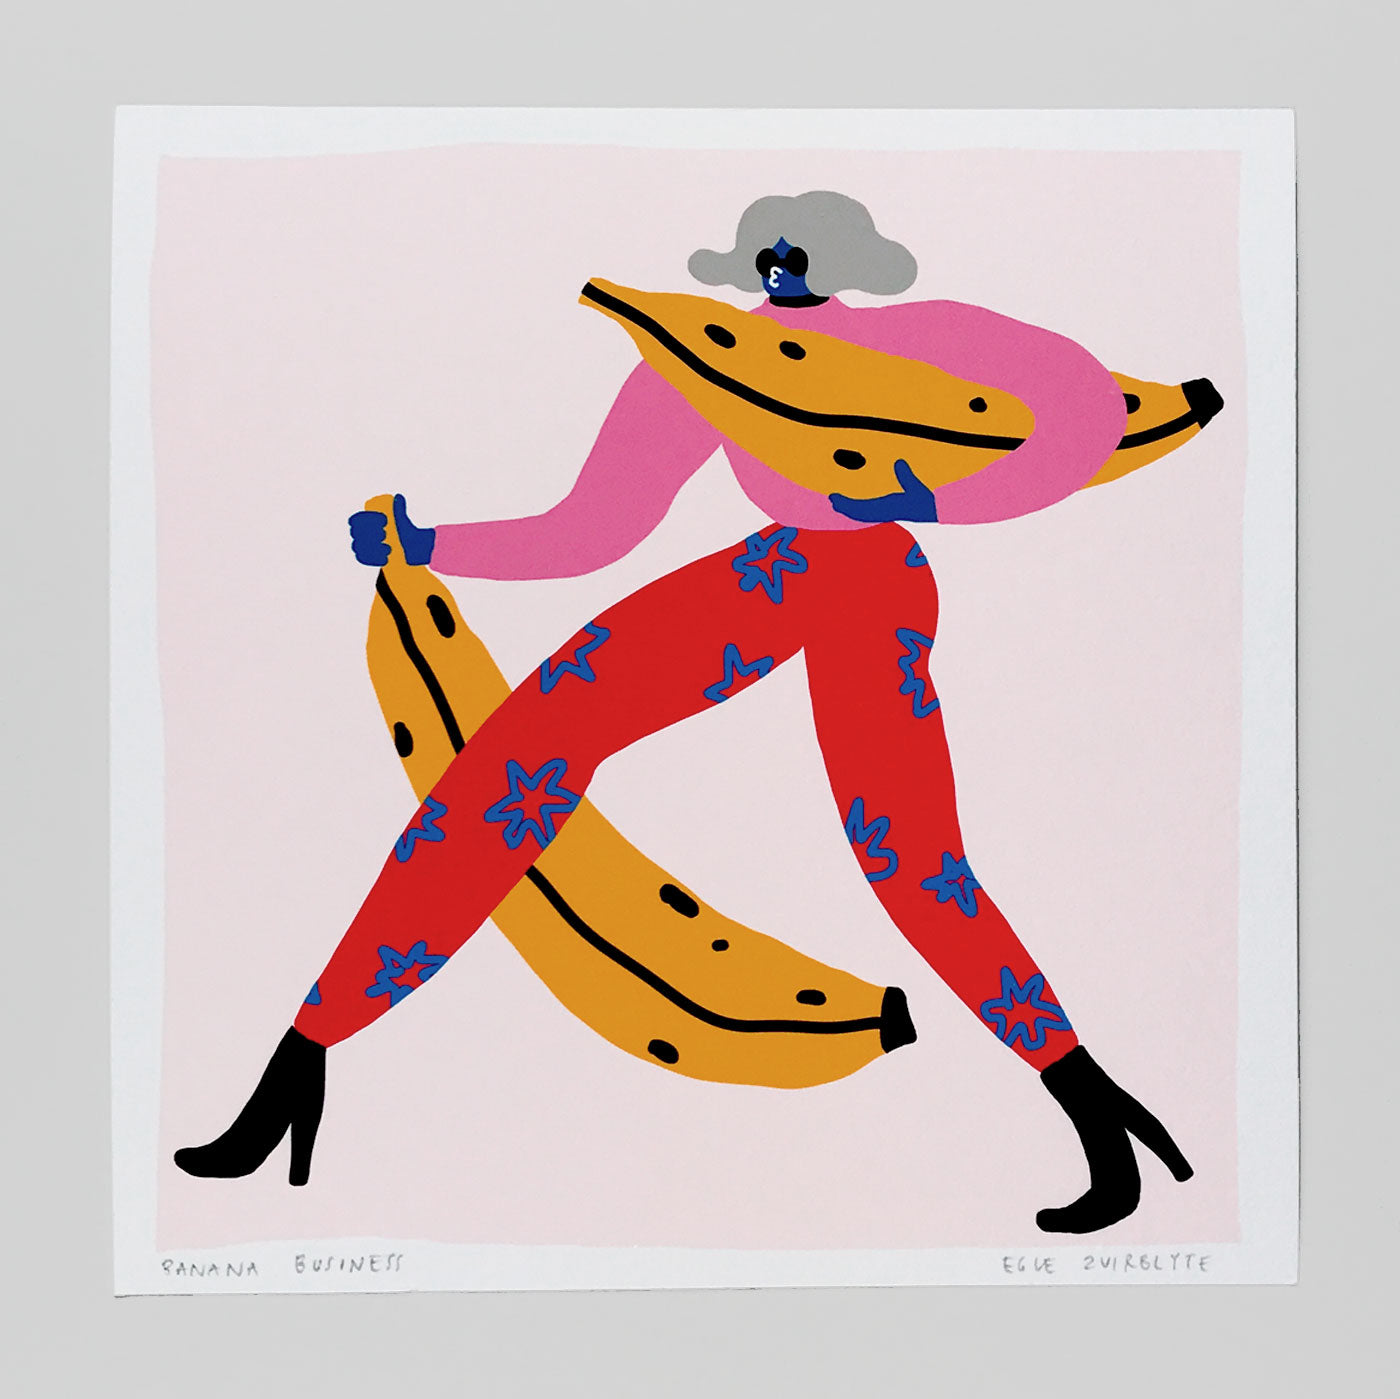 Banana Business Print By Egle Zvirblyte